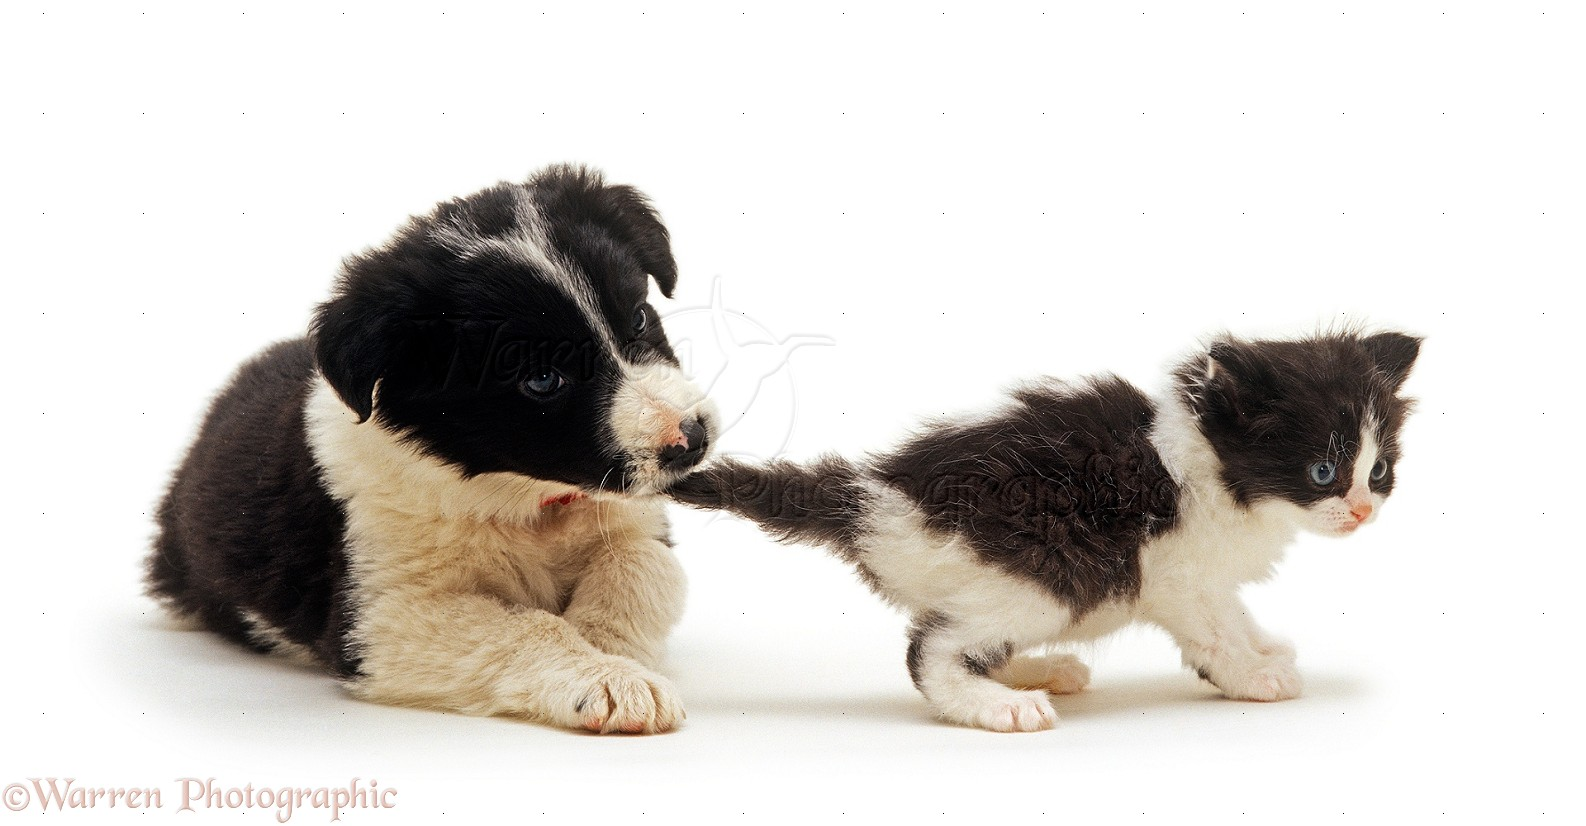 Border collie puppy phoebe pulling black and white kitten s tail